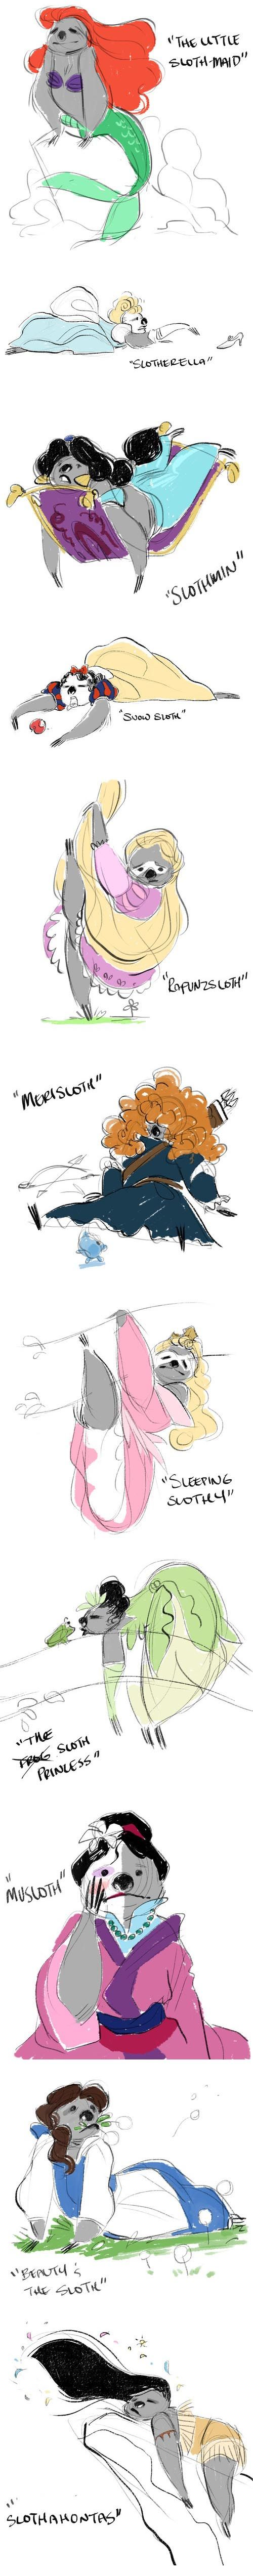 Disney Princesses as Sloths (I don't know why but I find this hilarious)